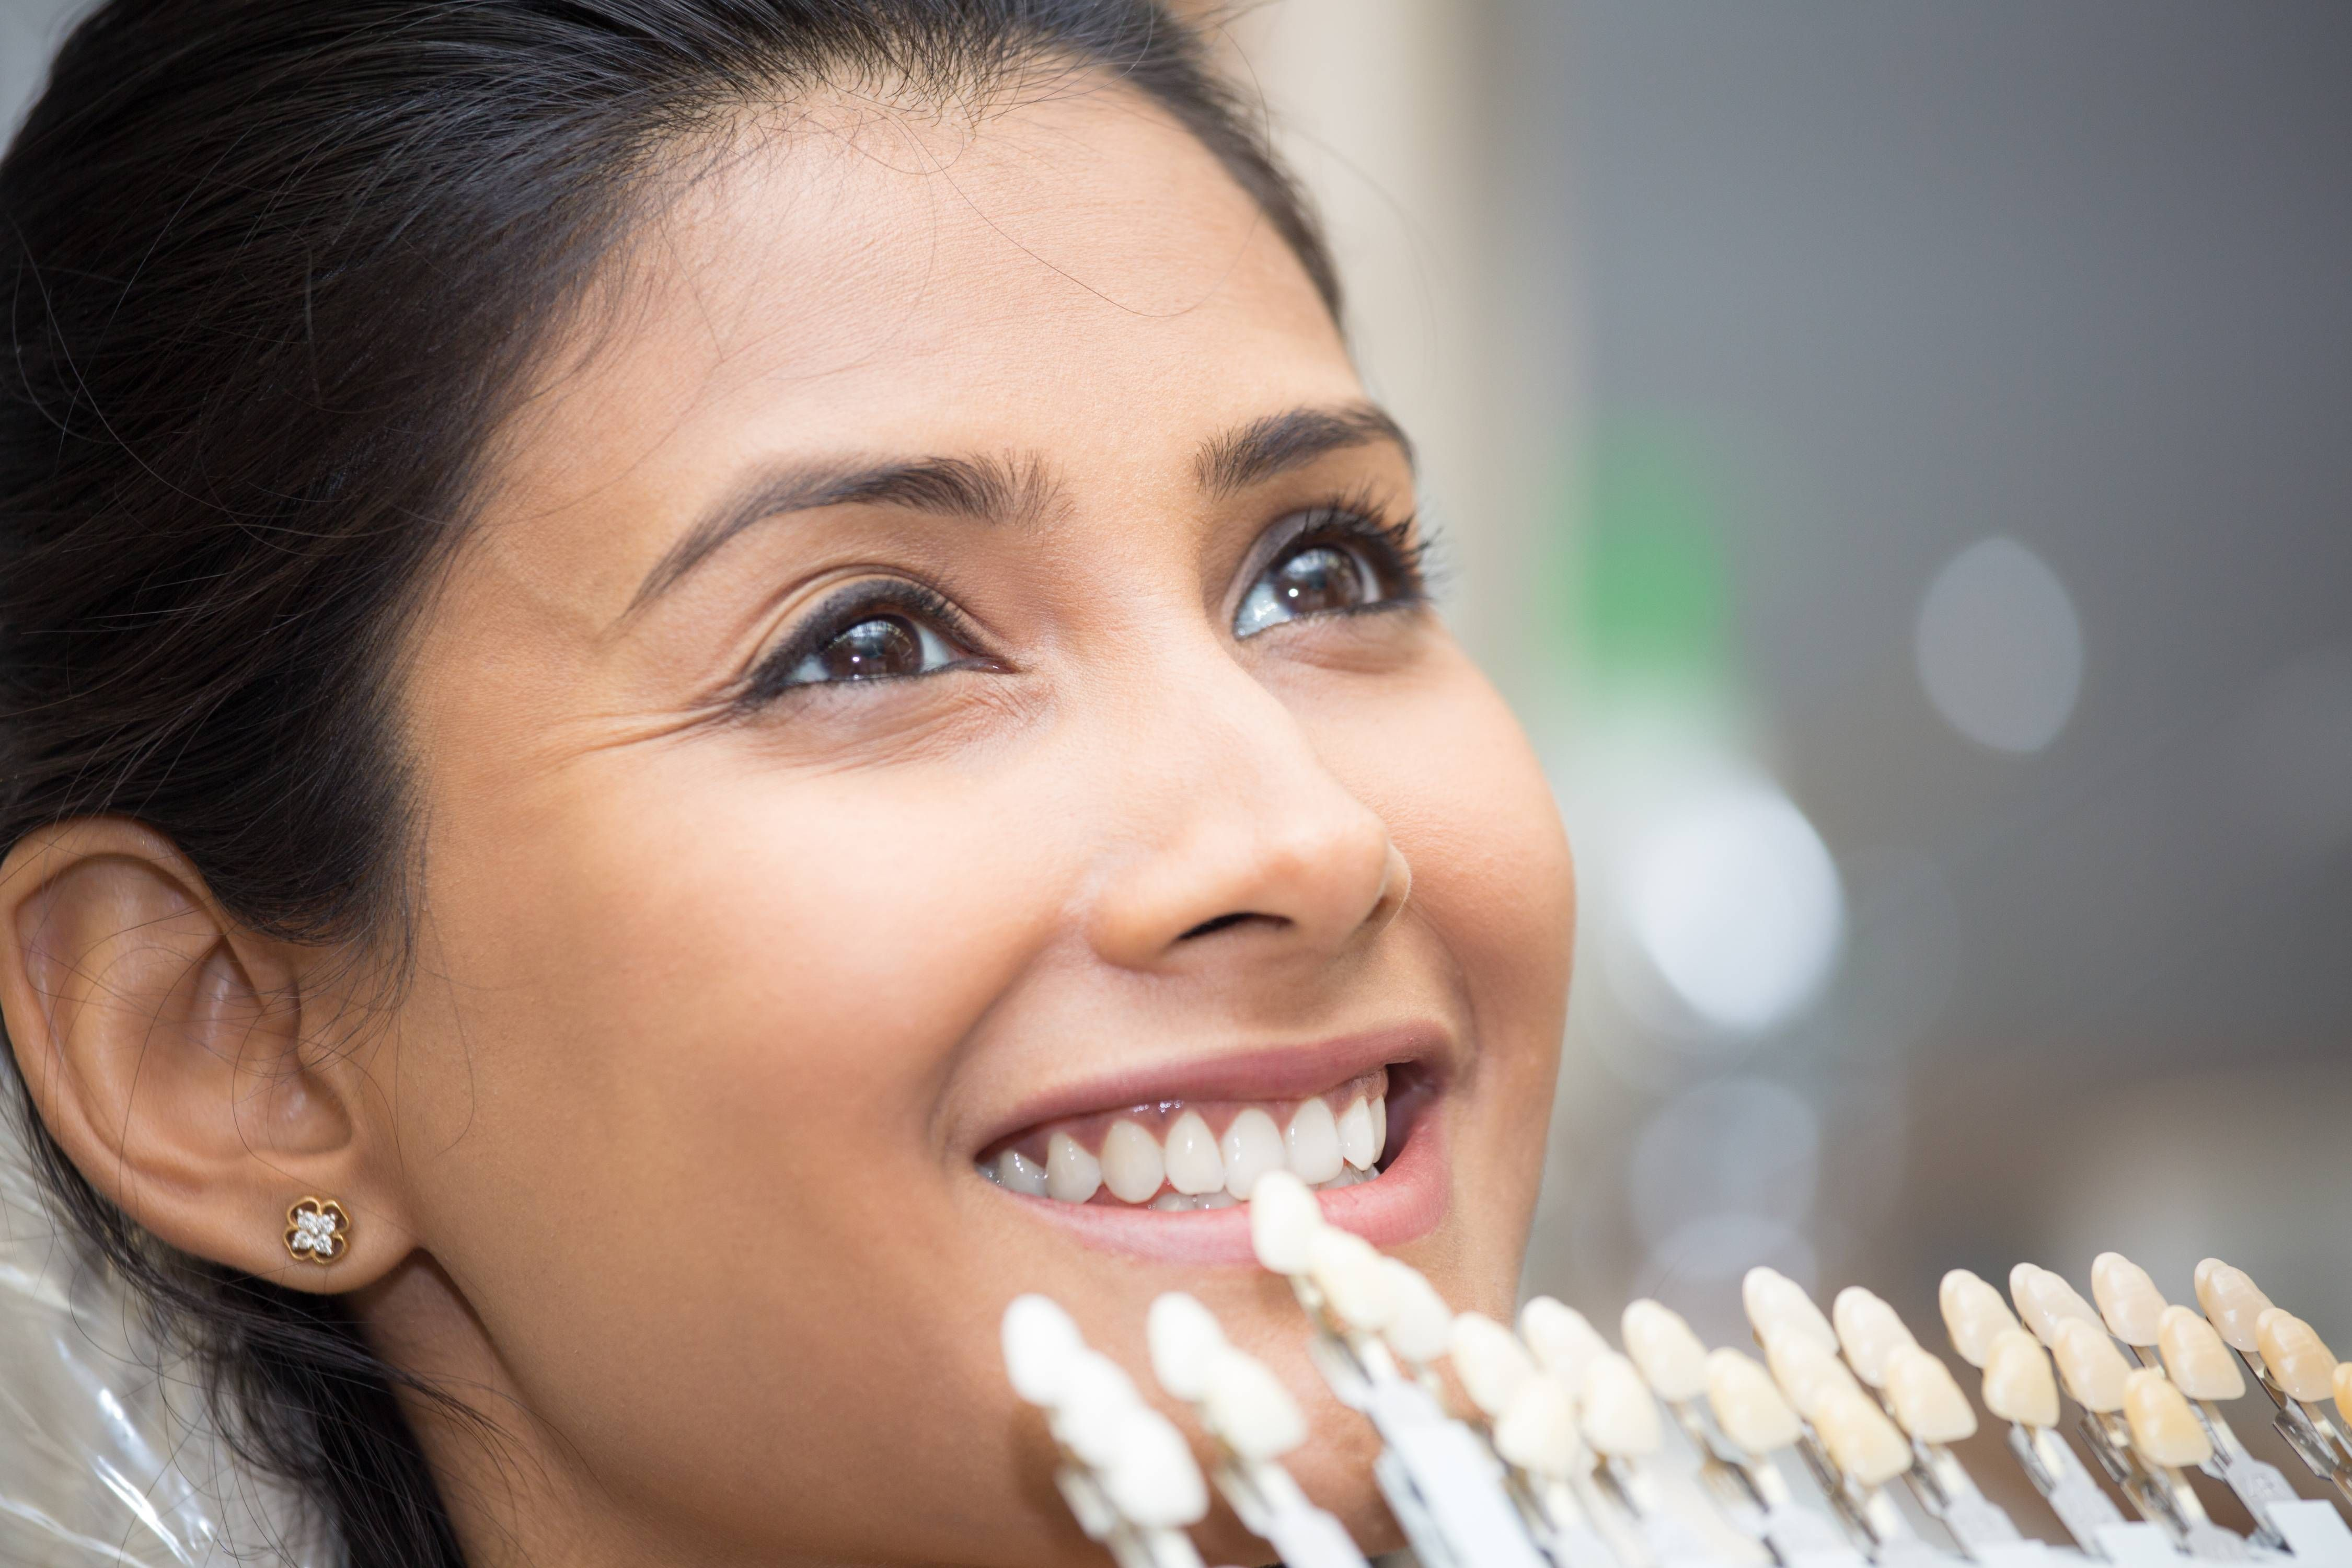 How Teeth Whitening Can Transform Your Smile